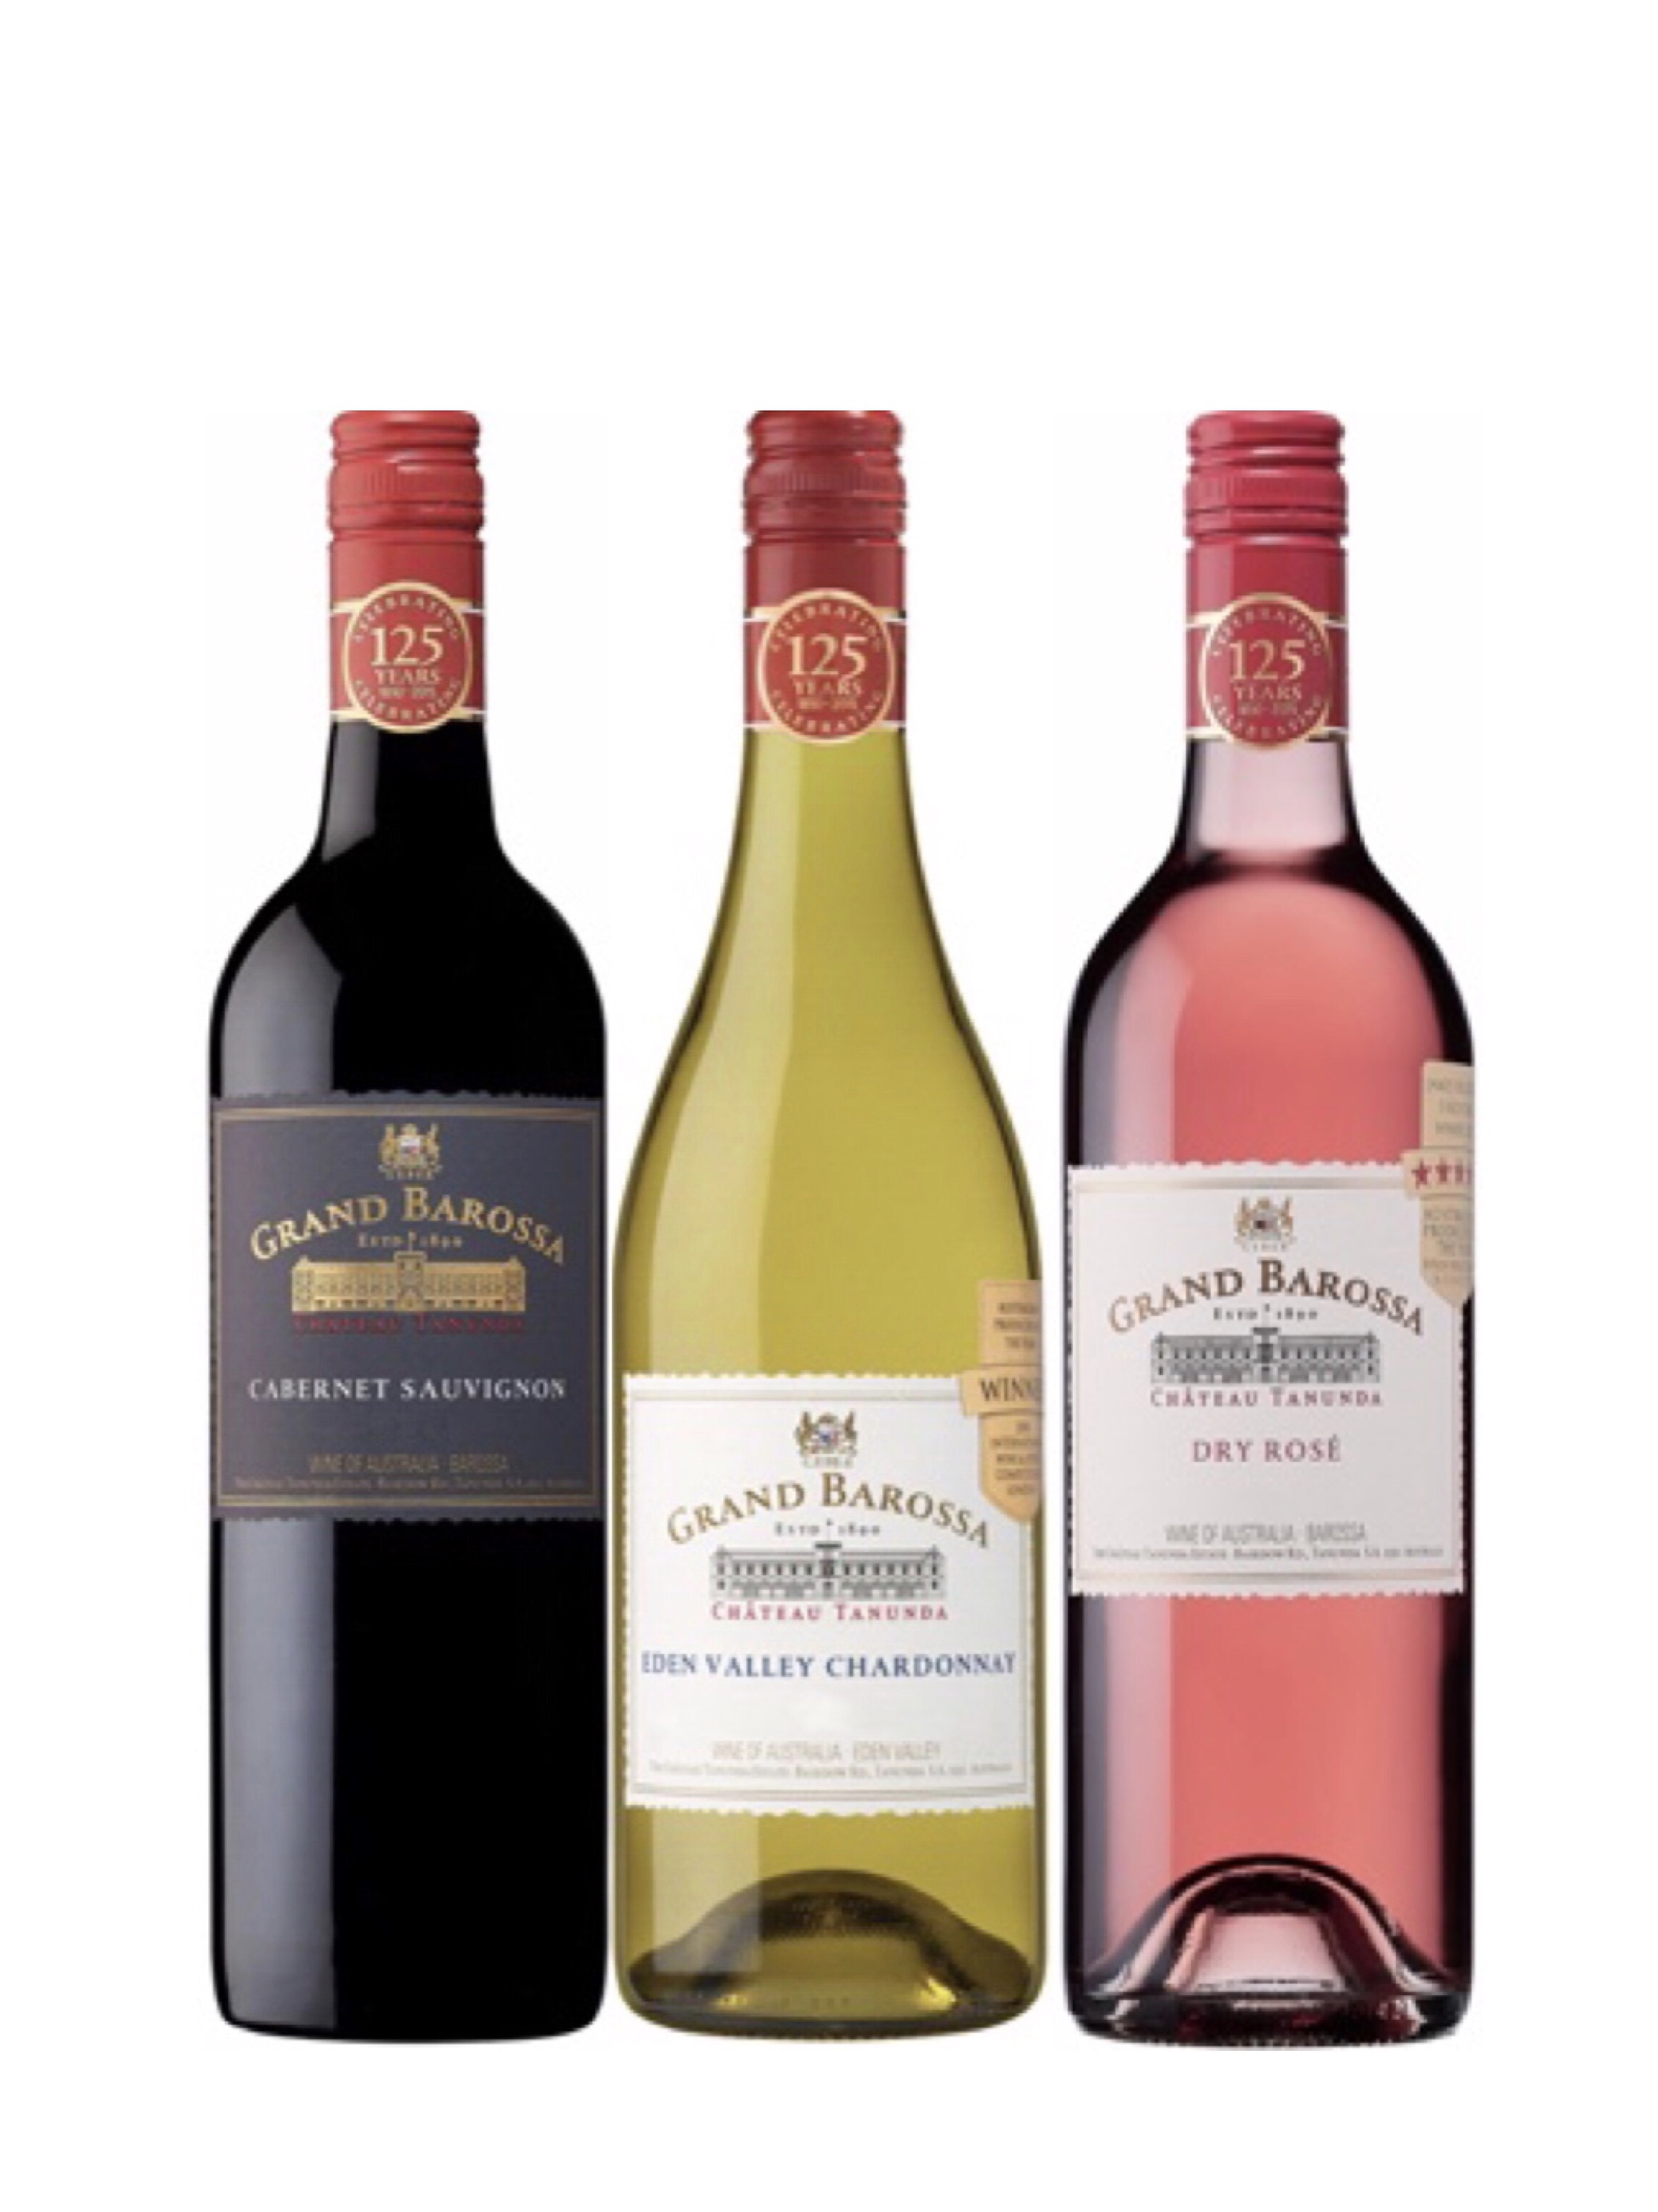 Award Winning Grand Barossa Cabernet Sauvignon And Chardonnay Bundle Plus One FREE Bottle Of Wine Worth $48